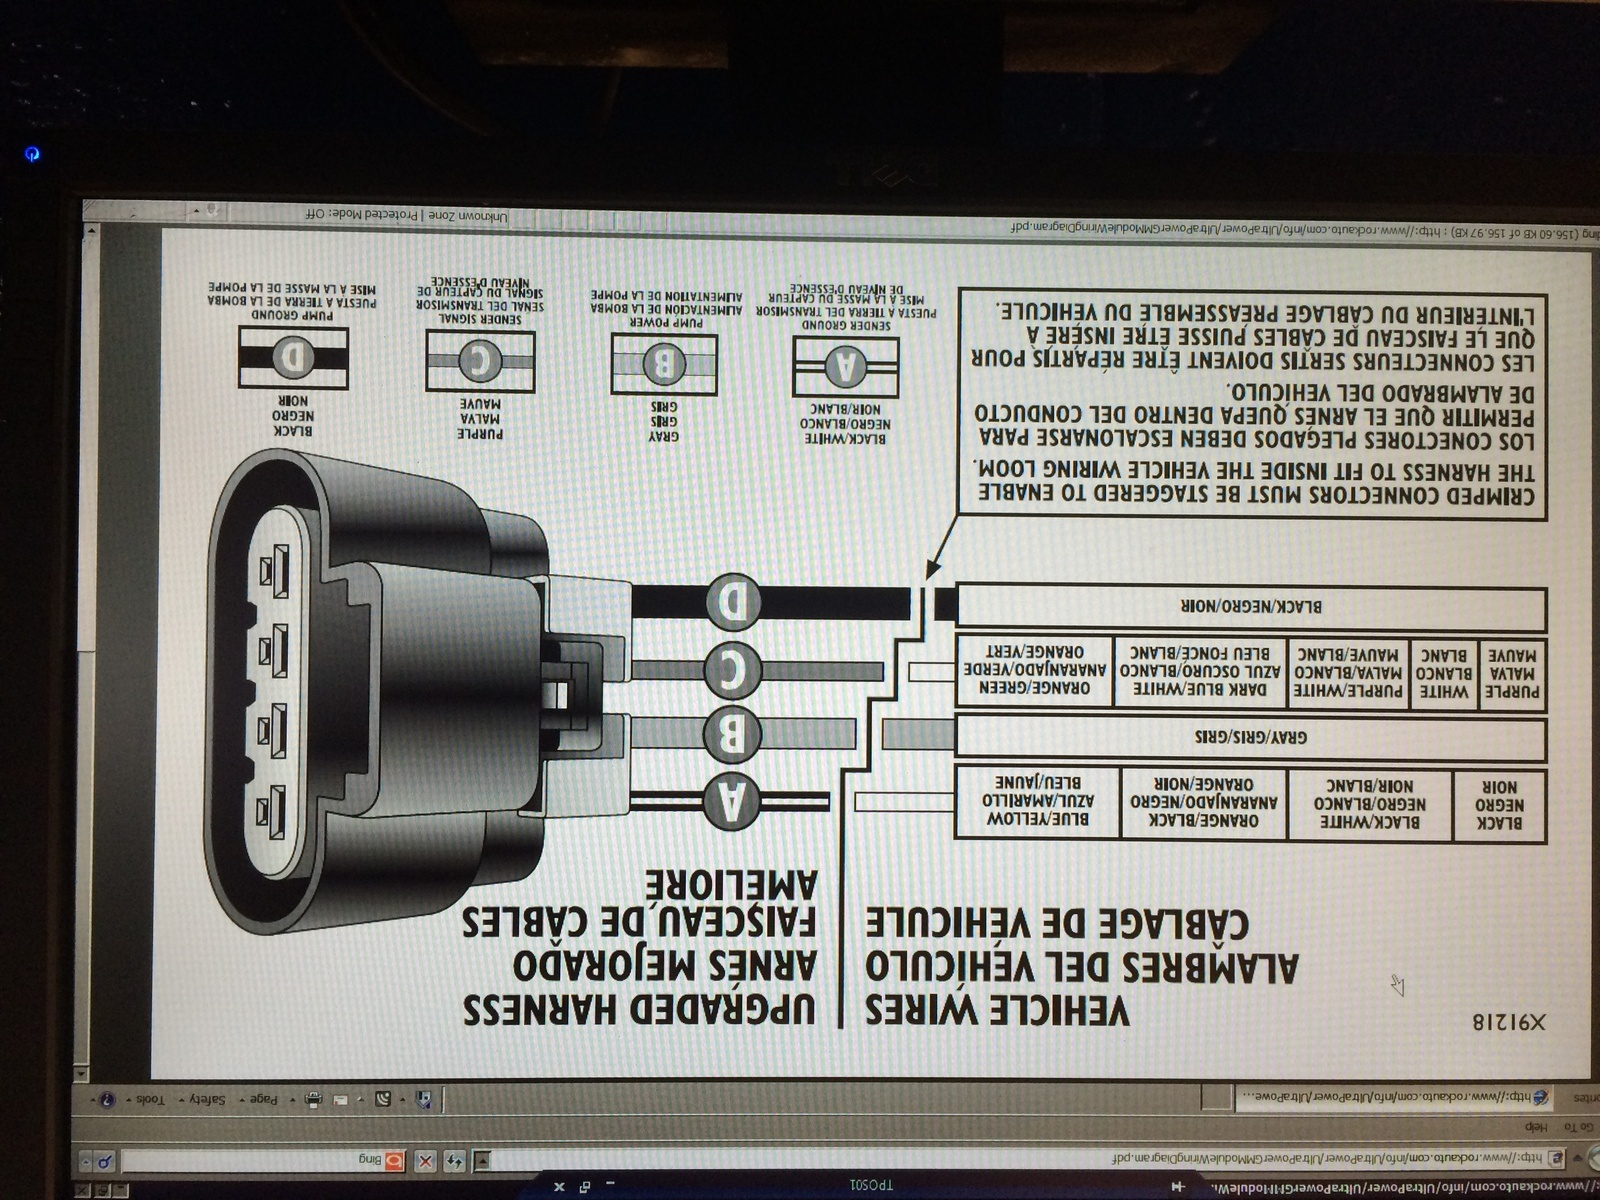 2002 yukon fuel pump wiring diagram 3 14 kenmo lp de \u2022chevy fuel pump wiring diagram wiring library rh mckortenoord nl 2002 yukon parts 2002 tahoe wiring diagram